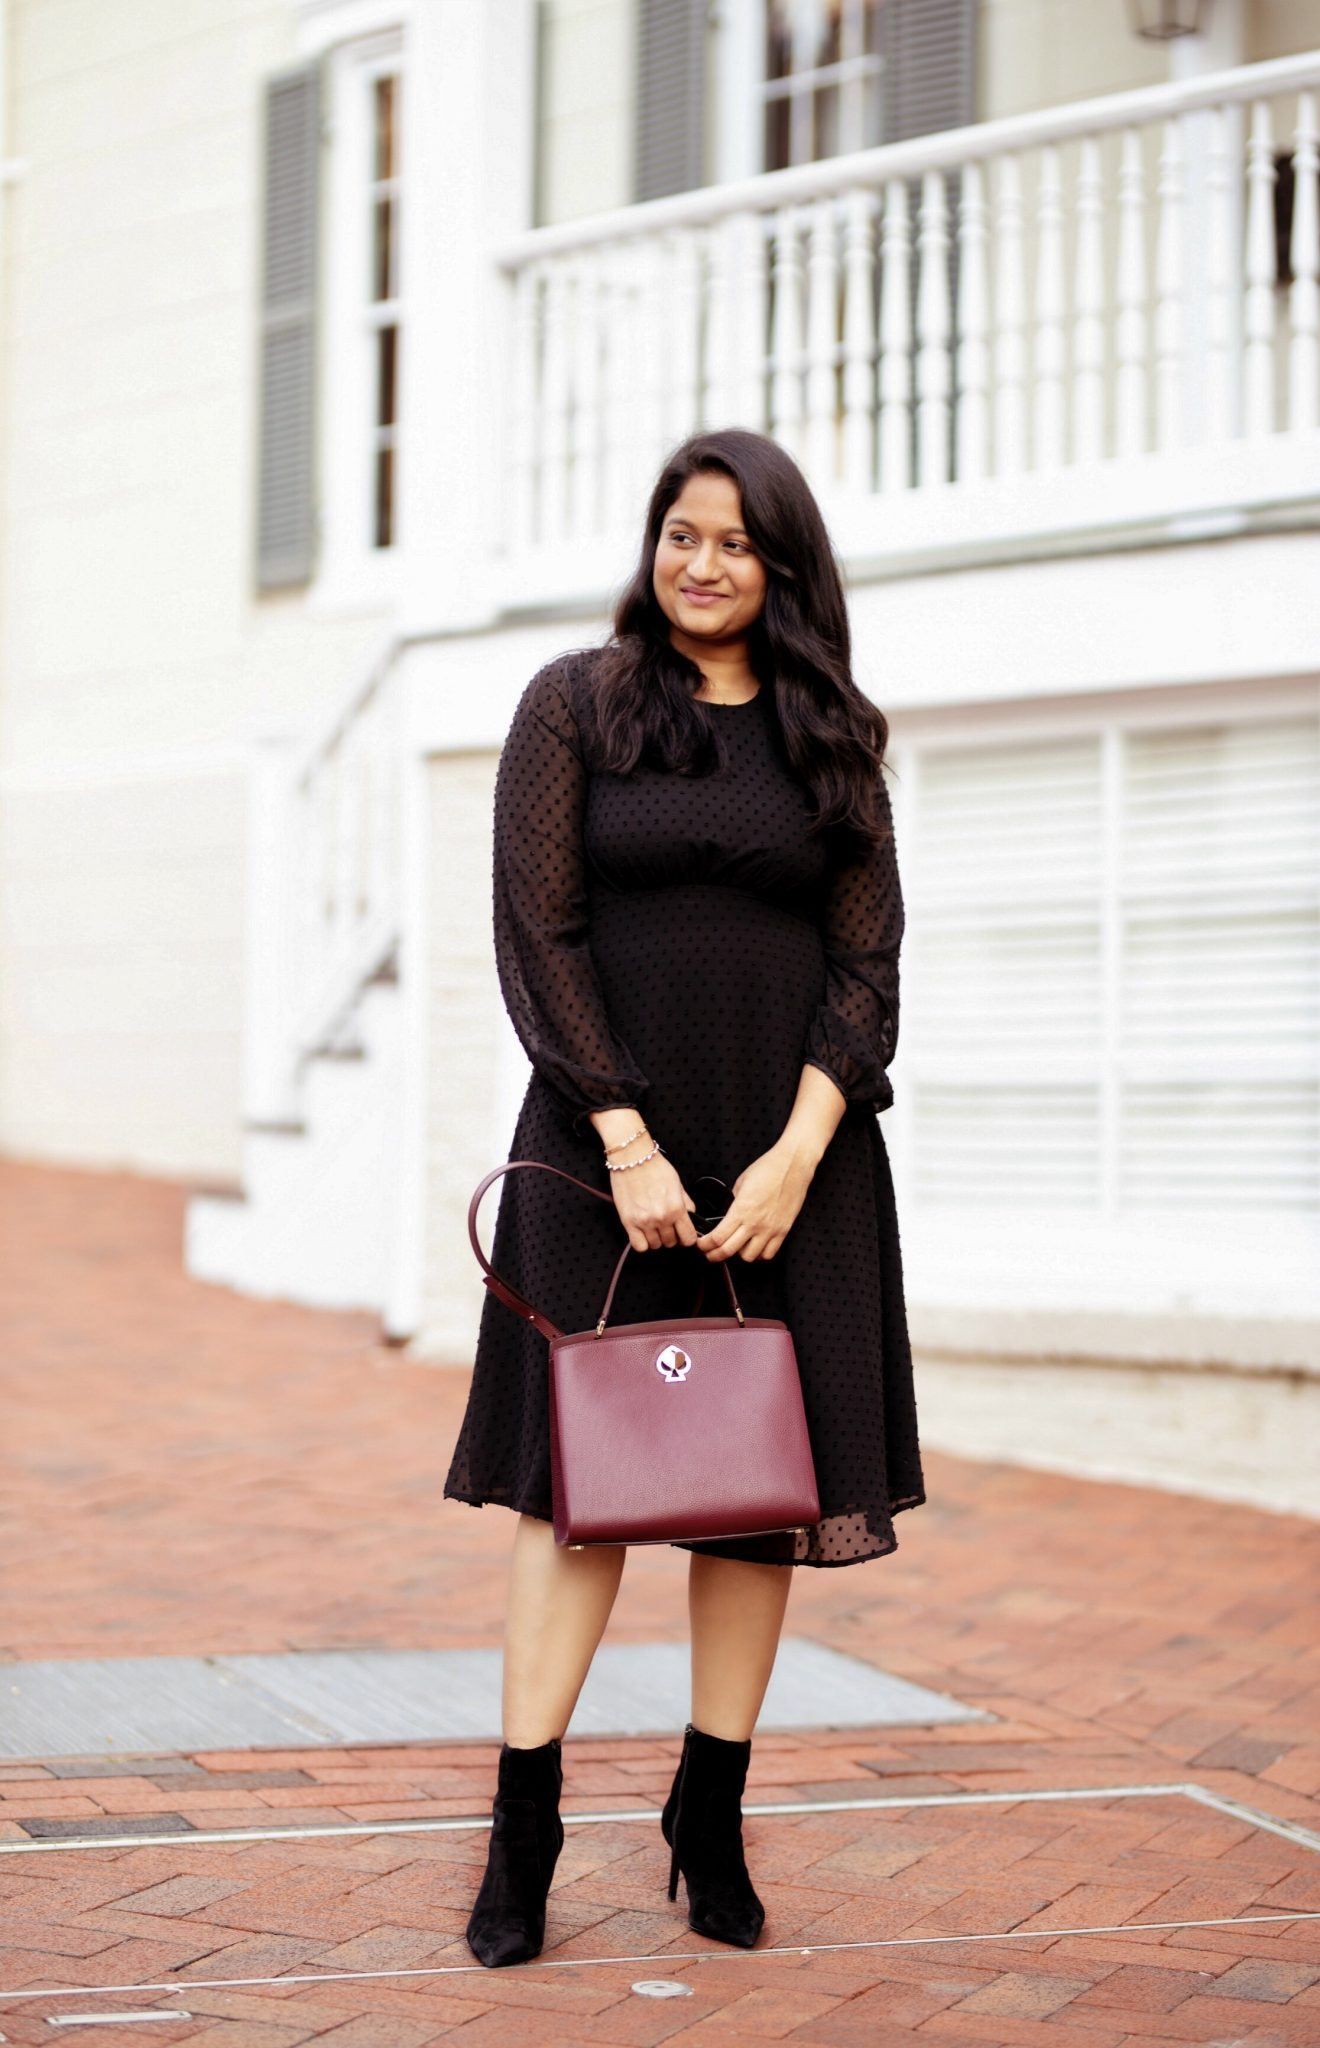 wearing skirt society Althea Black Swissdot Dress, brooks brother trench coat, banana republic Althea Black Swissdot Dress, Kate spade omy medium satchel | The Perfect Little Black Dress You Need for Every Occasion and it's Under $50 by popular modest fashion blog, Dreaming Loud: image of a woman outside wearing a Skirt Society Althea Black Swissdot Dress, Bauble Bar MINI AMARIELLA FLOWER STUD RESIN EARRINGS, Gap Skinny-Heel Ankle Boot, and holding a romy medium satchel.